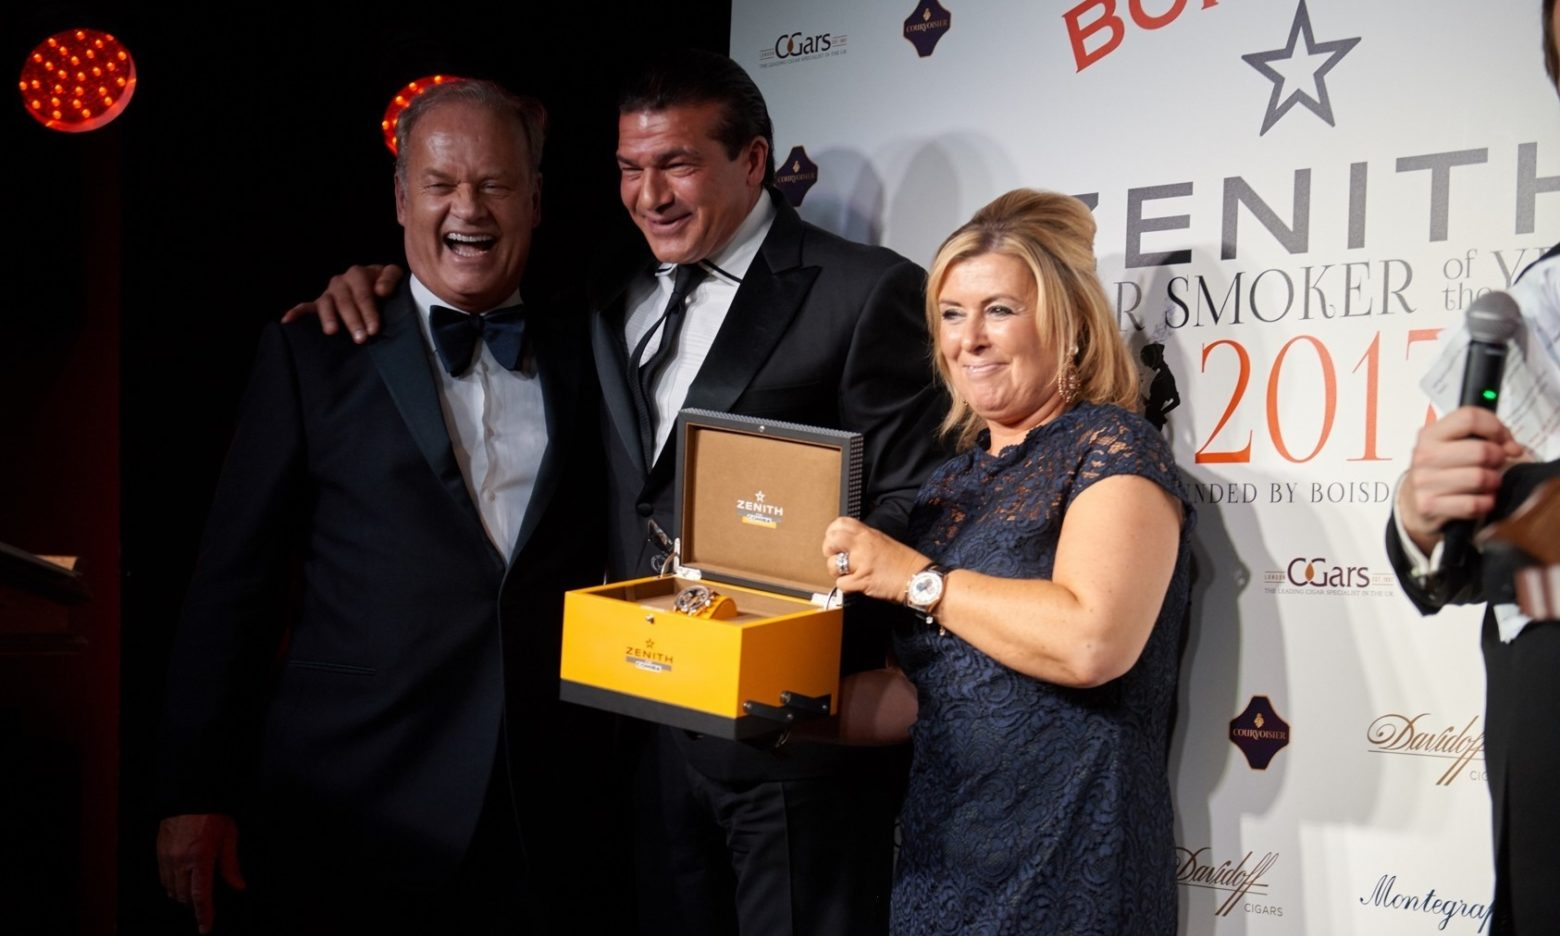 THE ZENITH  WATCHES CIGAR SMOKER OF THE YEAR 2017